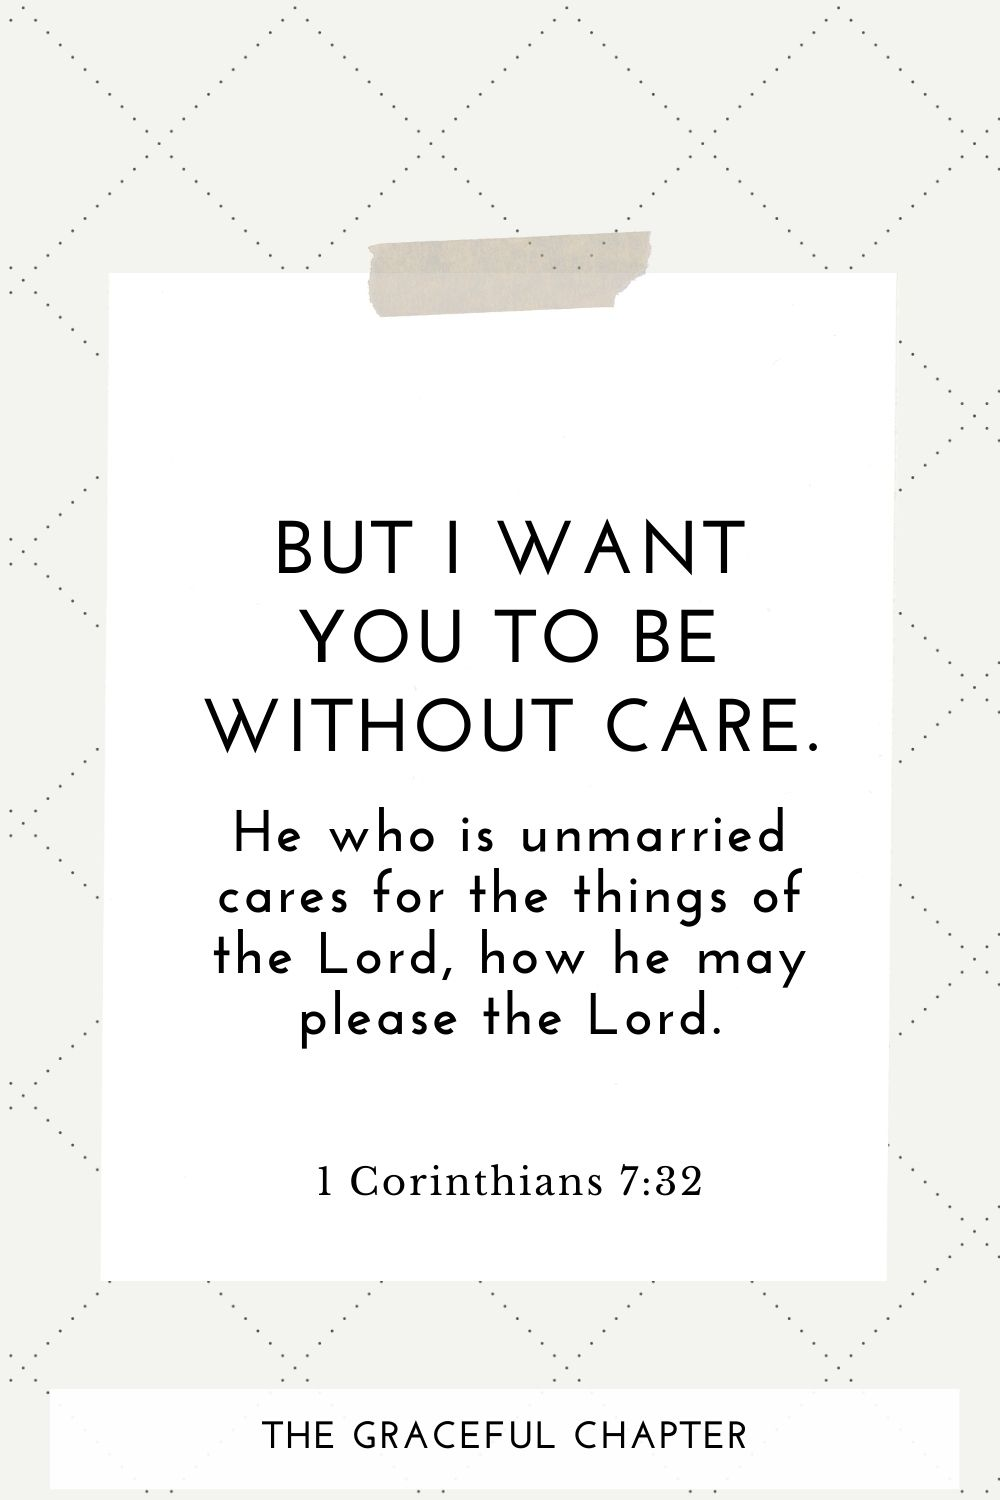 But I want you to be without care. He who is unmarried cares for the things of the Lord, how he may please the Lord. 1 Corinthians 7:32